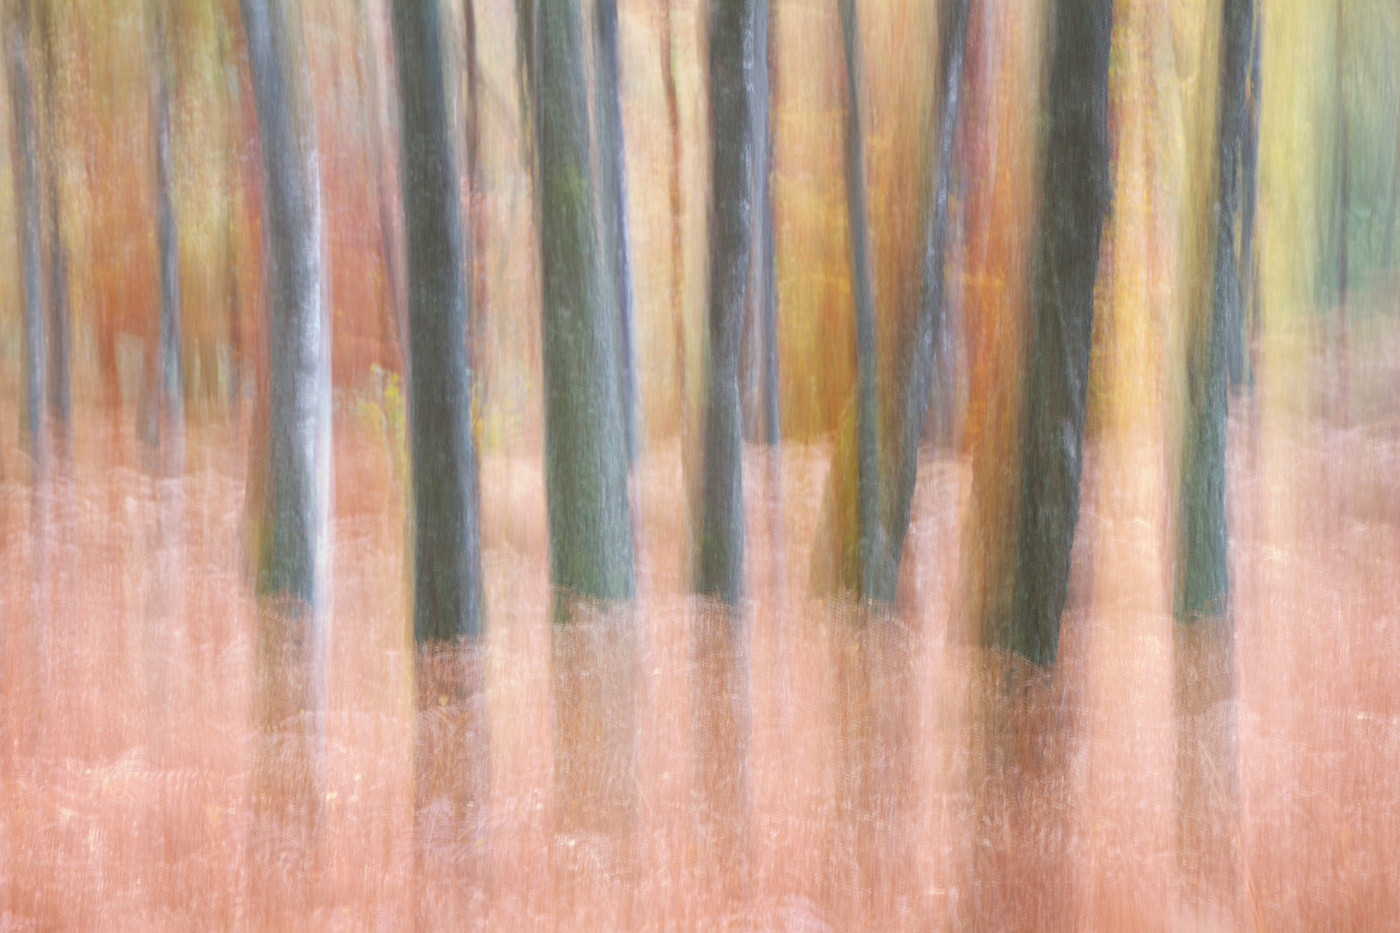 GROUP 1 18 SEA OF TREES by Carole Lewis